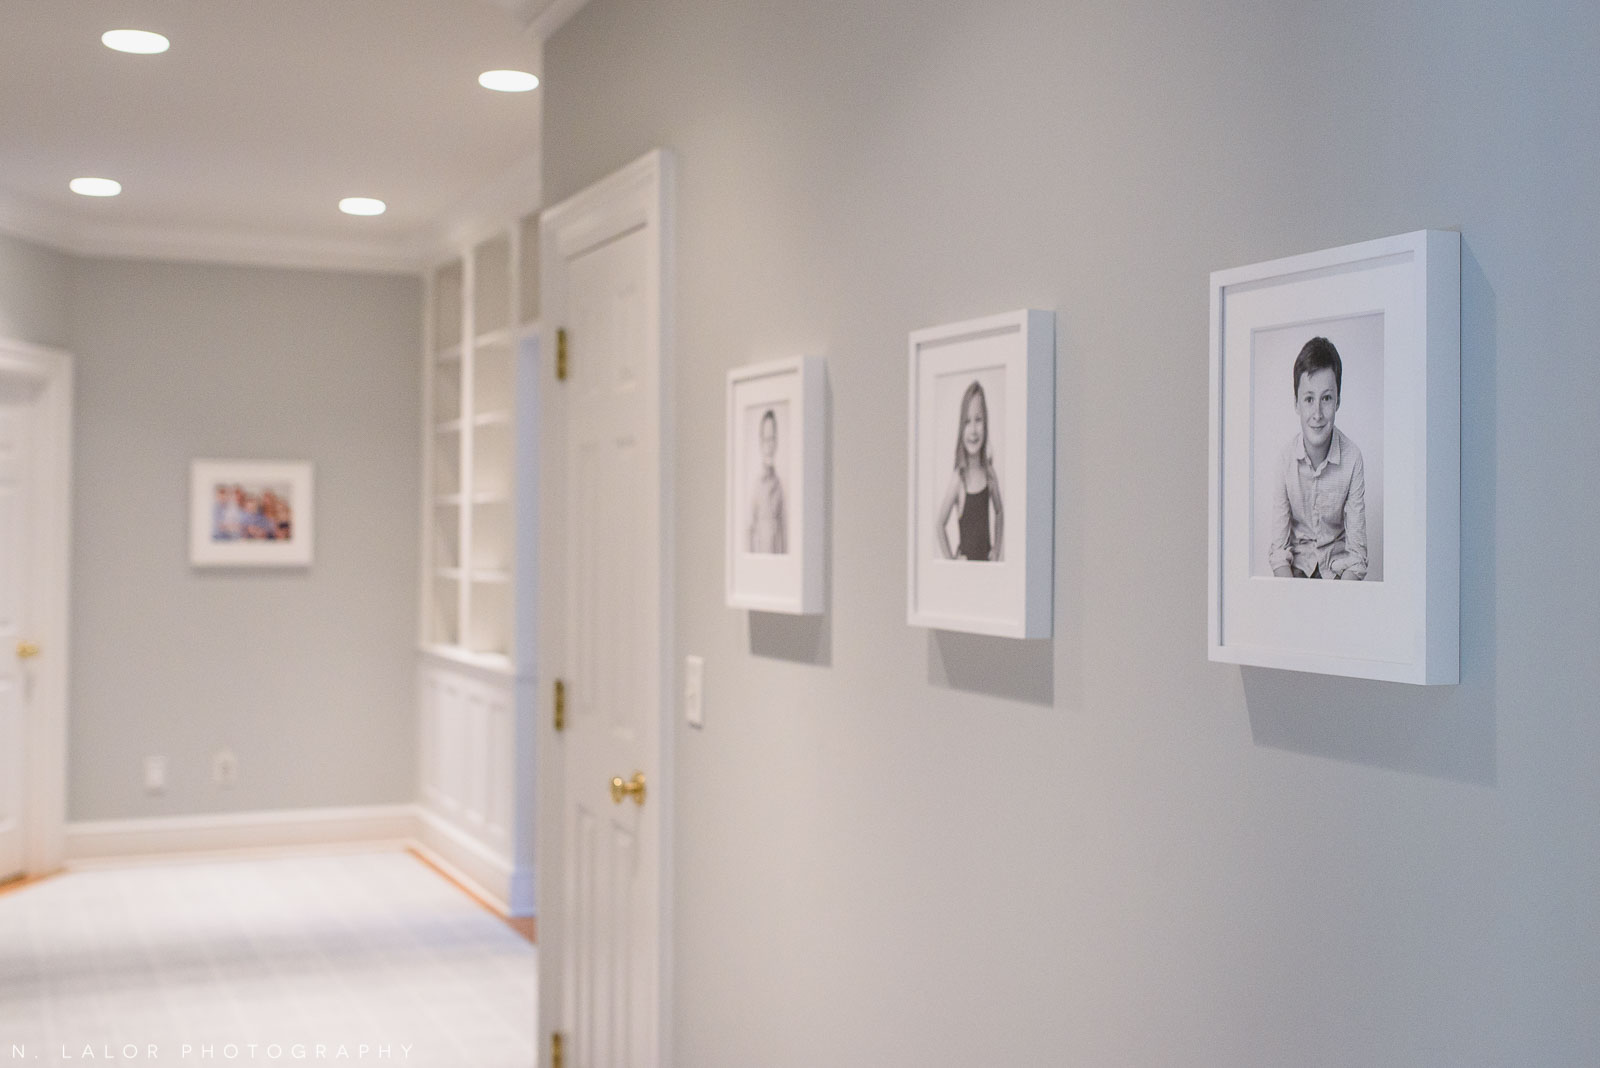 Image of a home interior with frames on the wall. Portraits by N. Lalor Photography in Greenwich, Connecticut.